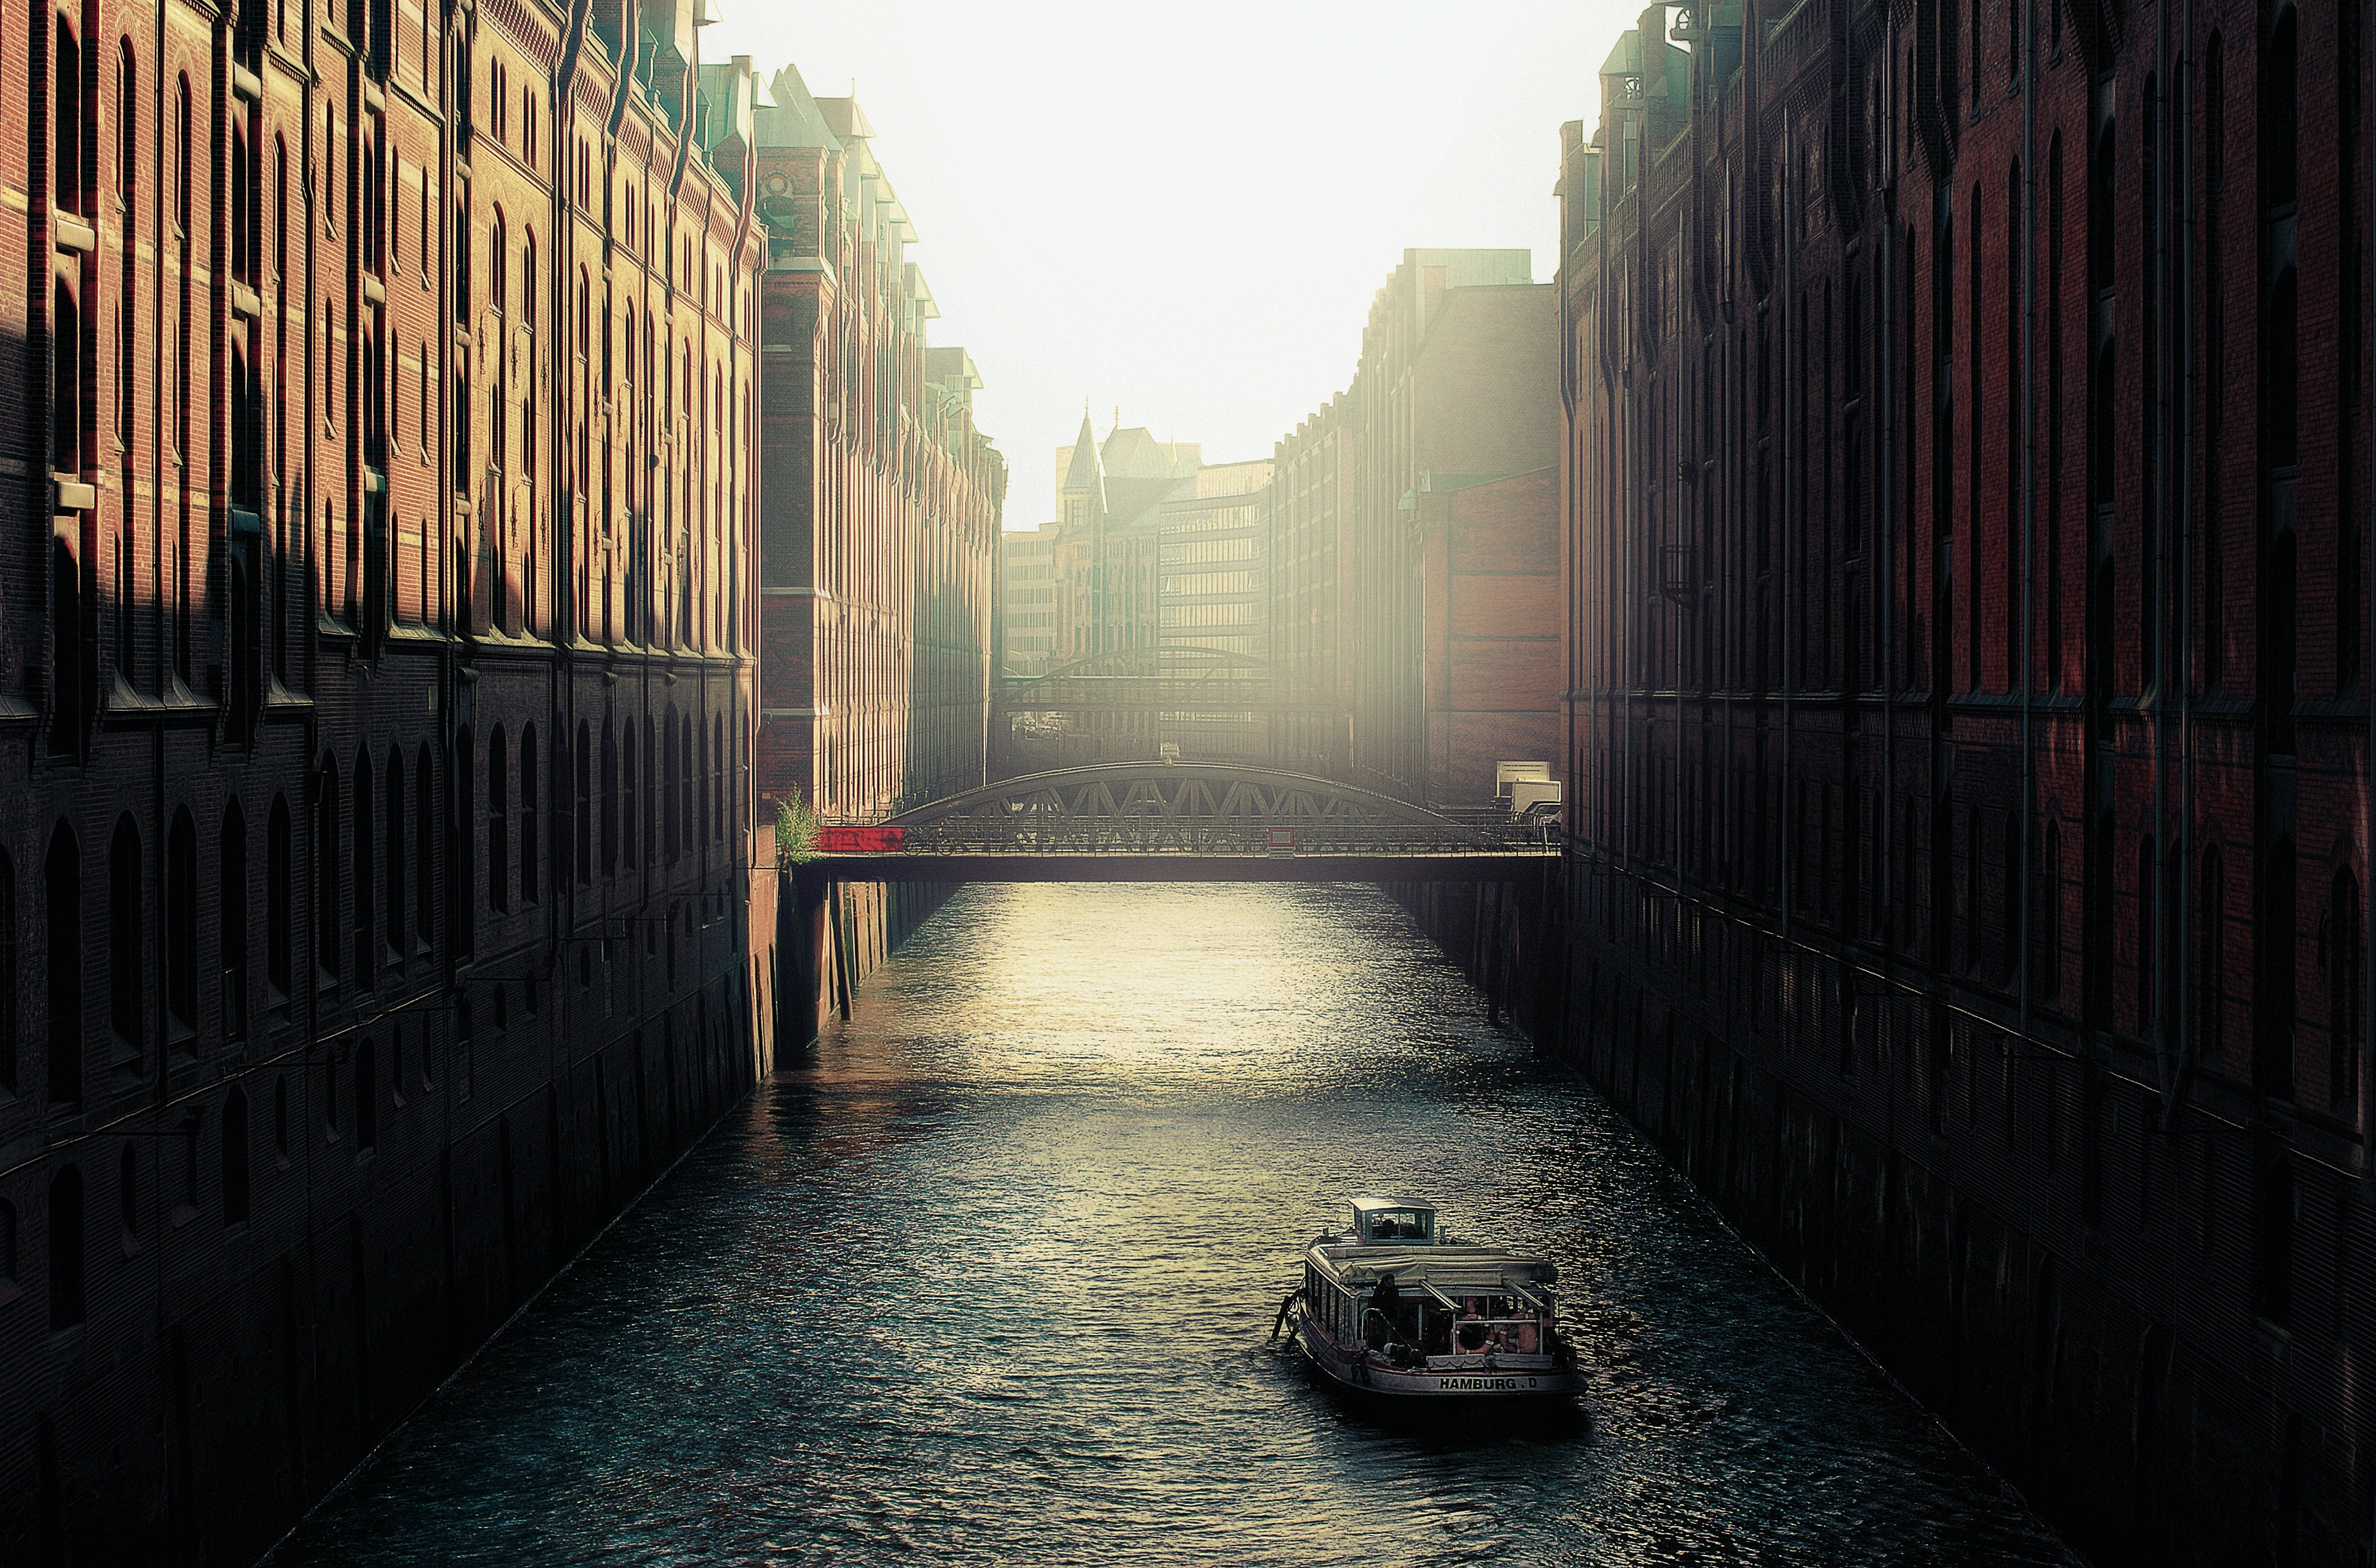 Boat rides down the canal lined with bridges in Speicherstadt